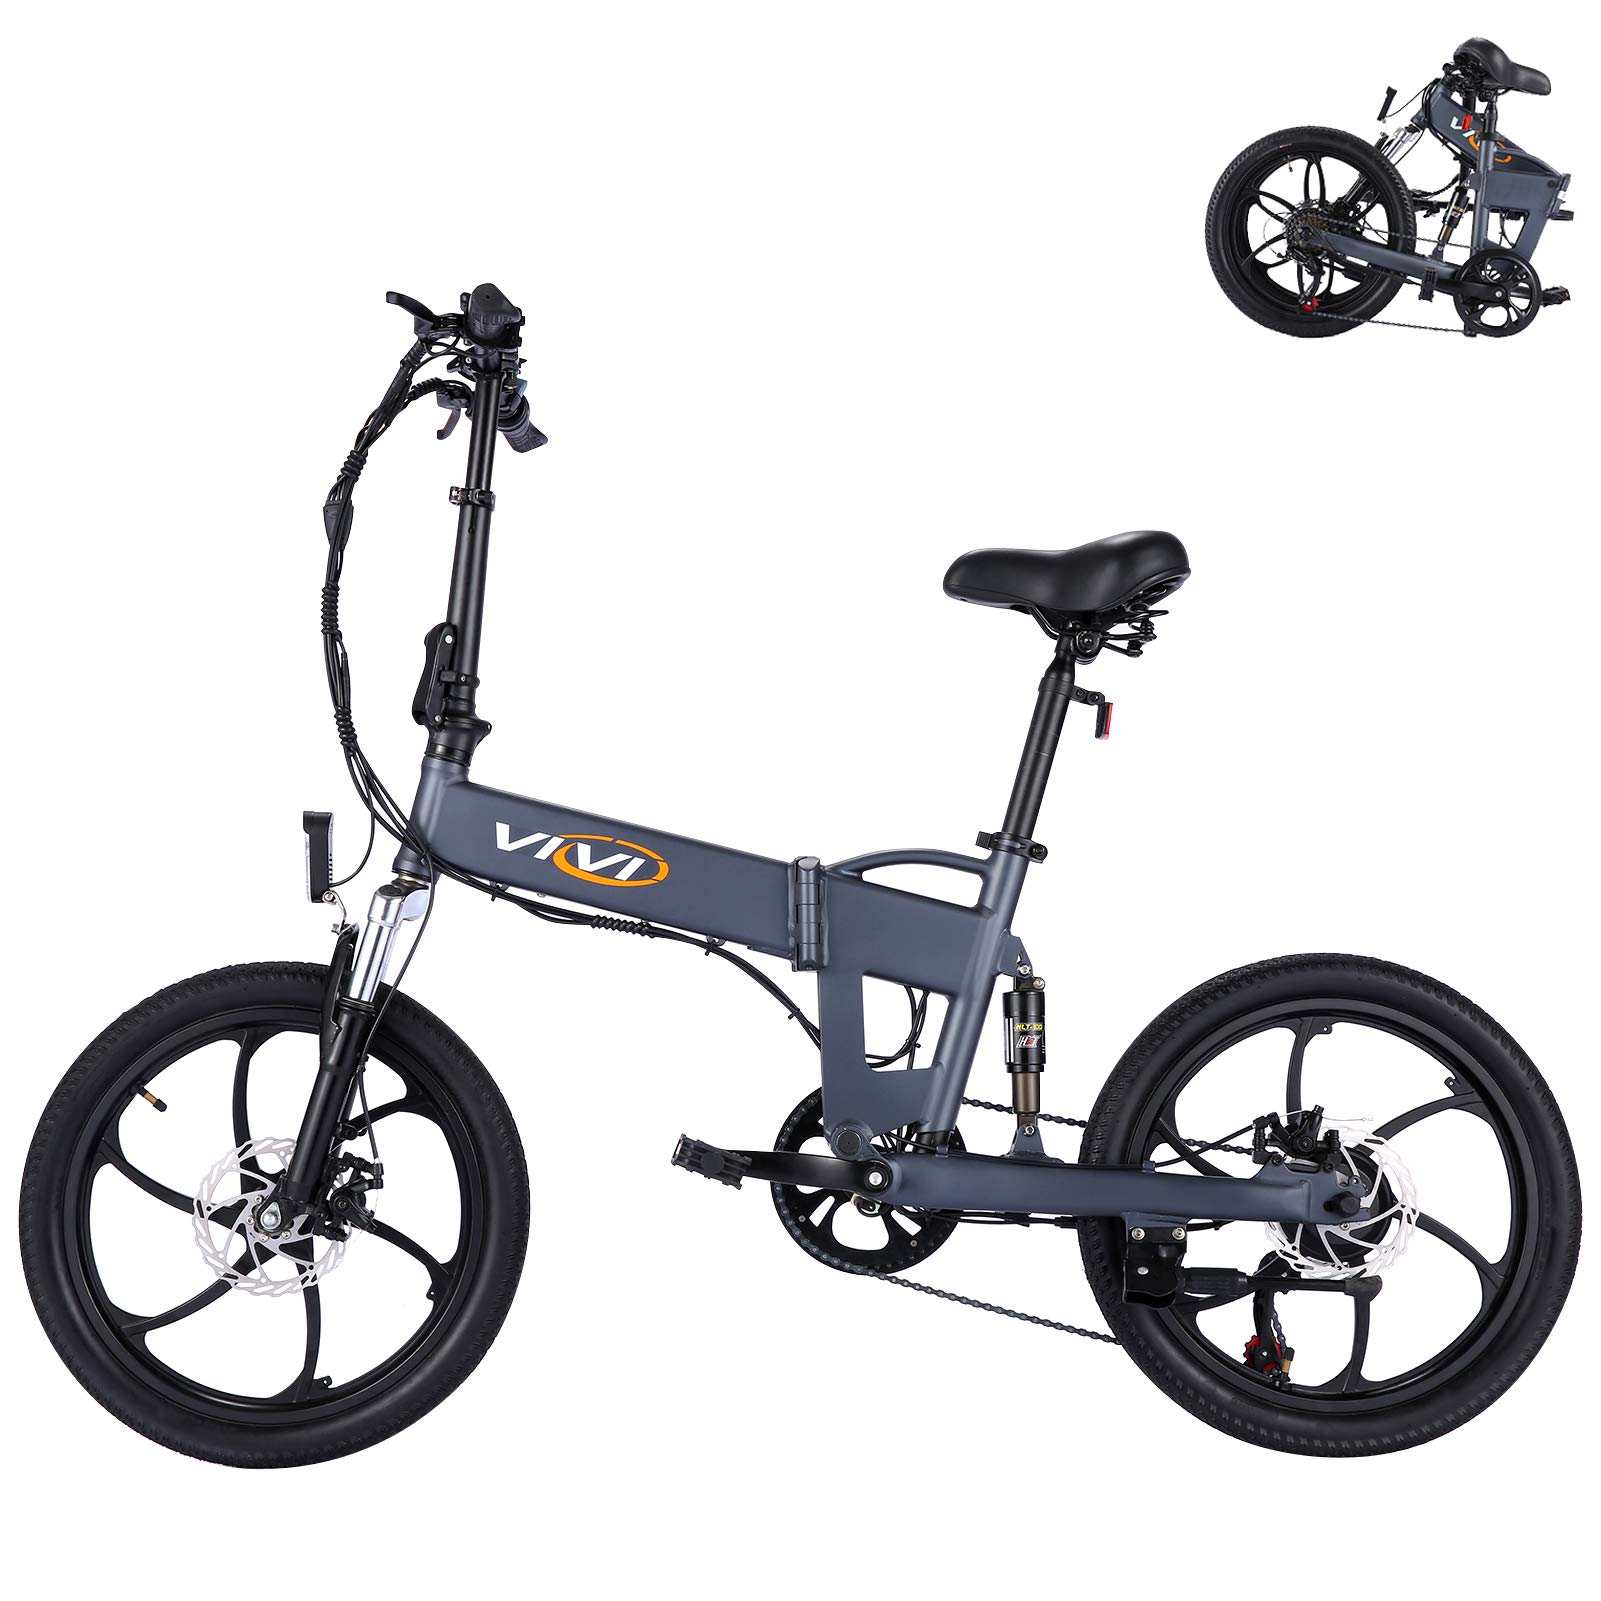 Vivi Folding Electric Bike Ebike, Electric Bicycle for Adults 20Mph with 36V 10.4Ah Removable Lithium-Ion Battery, 350W Motor and Shinmano Professional 6/21 Speed Gears